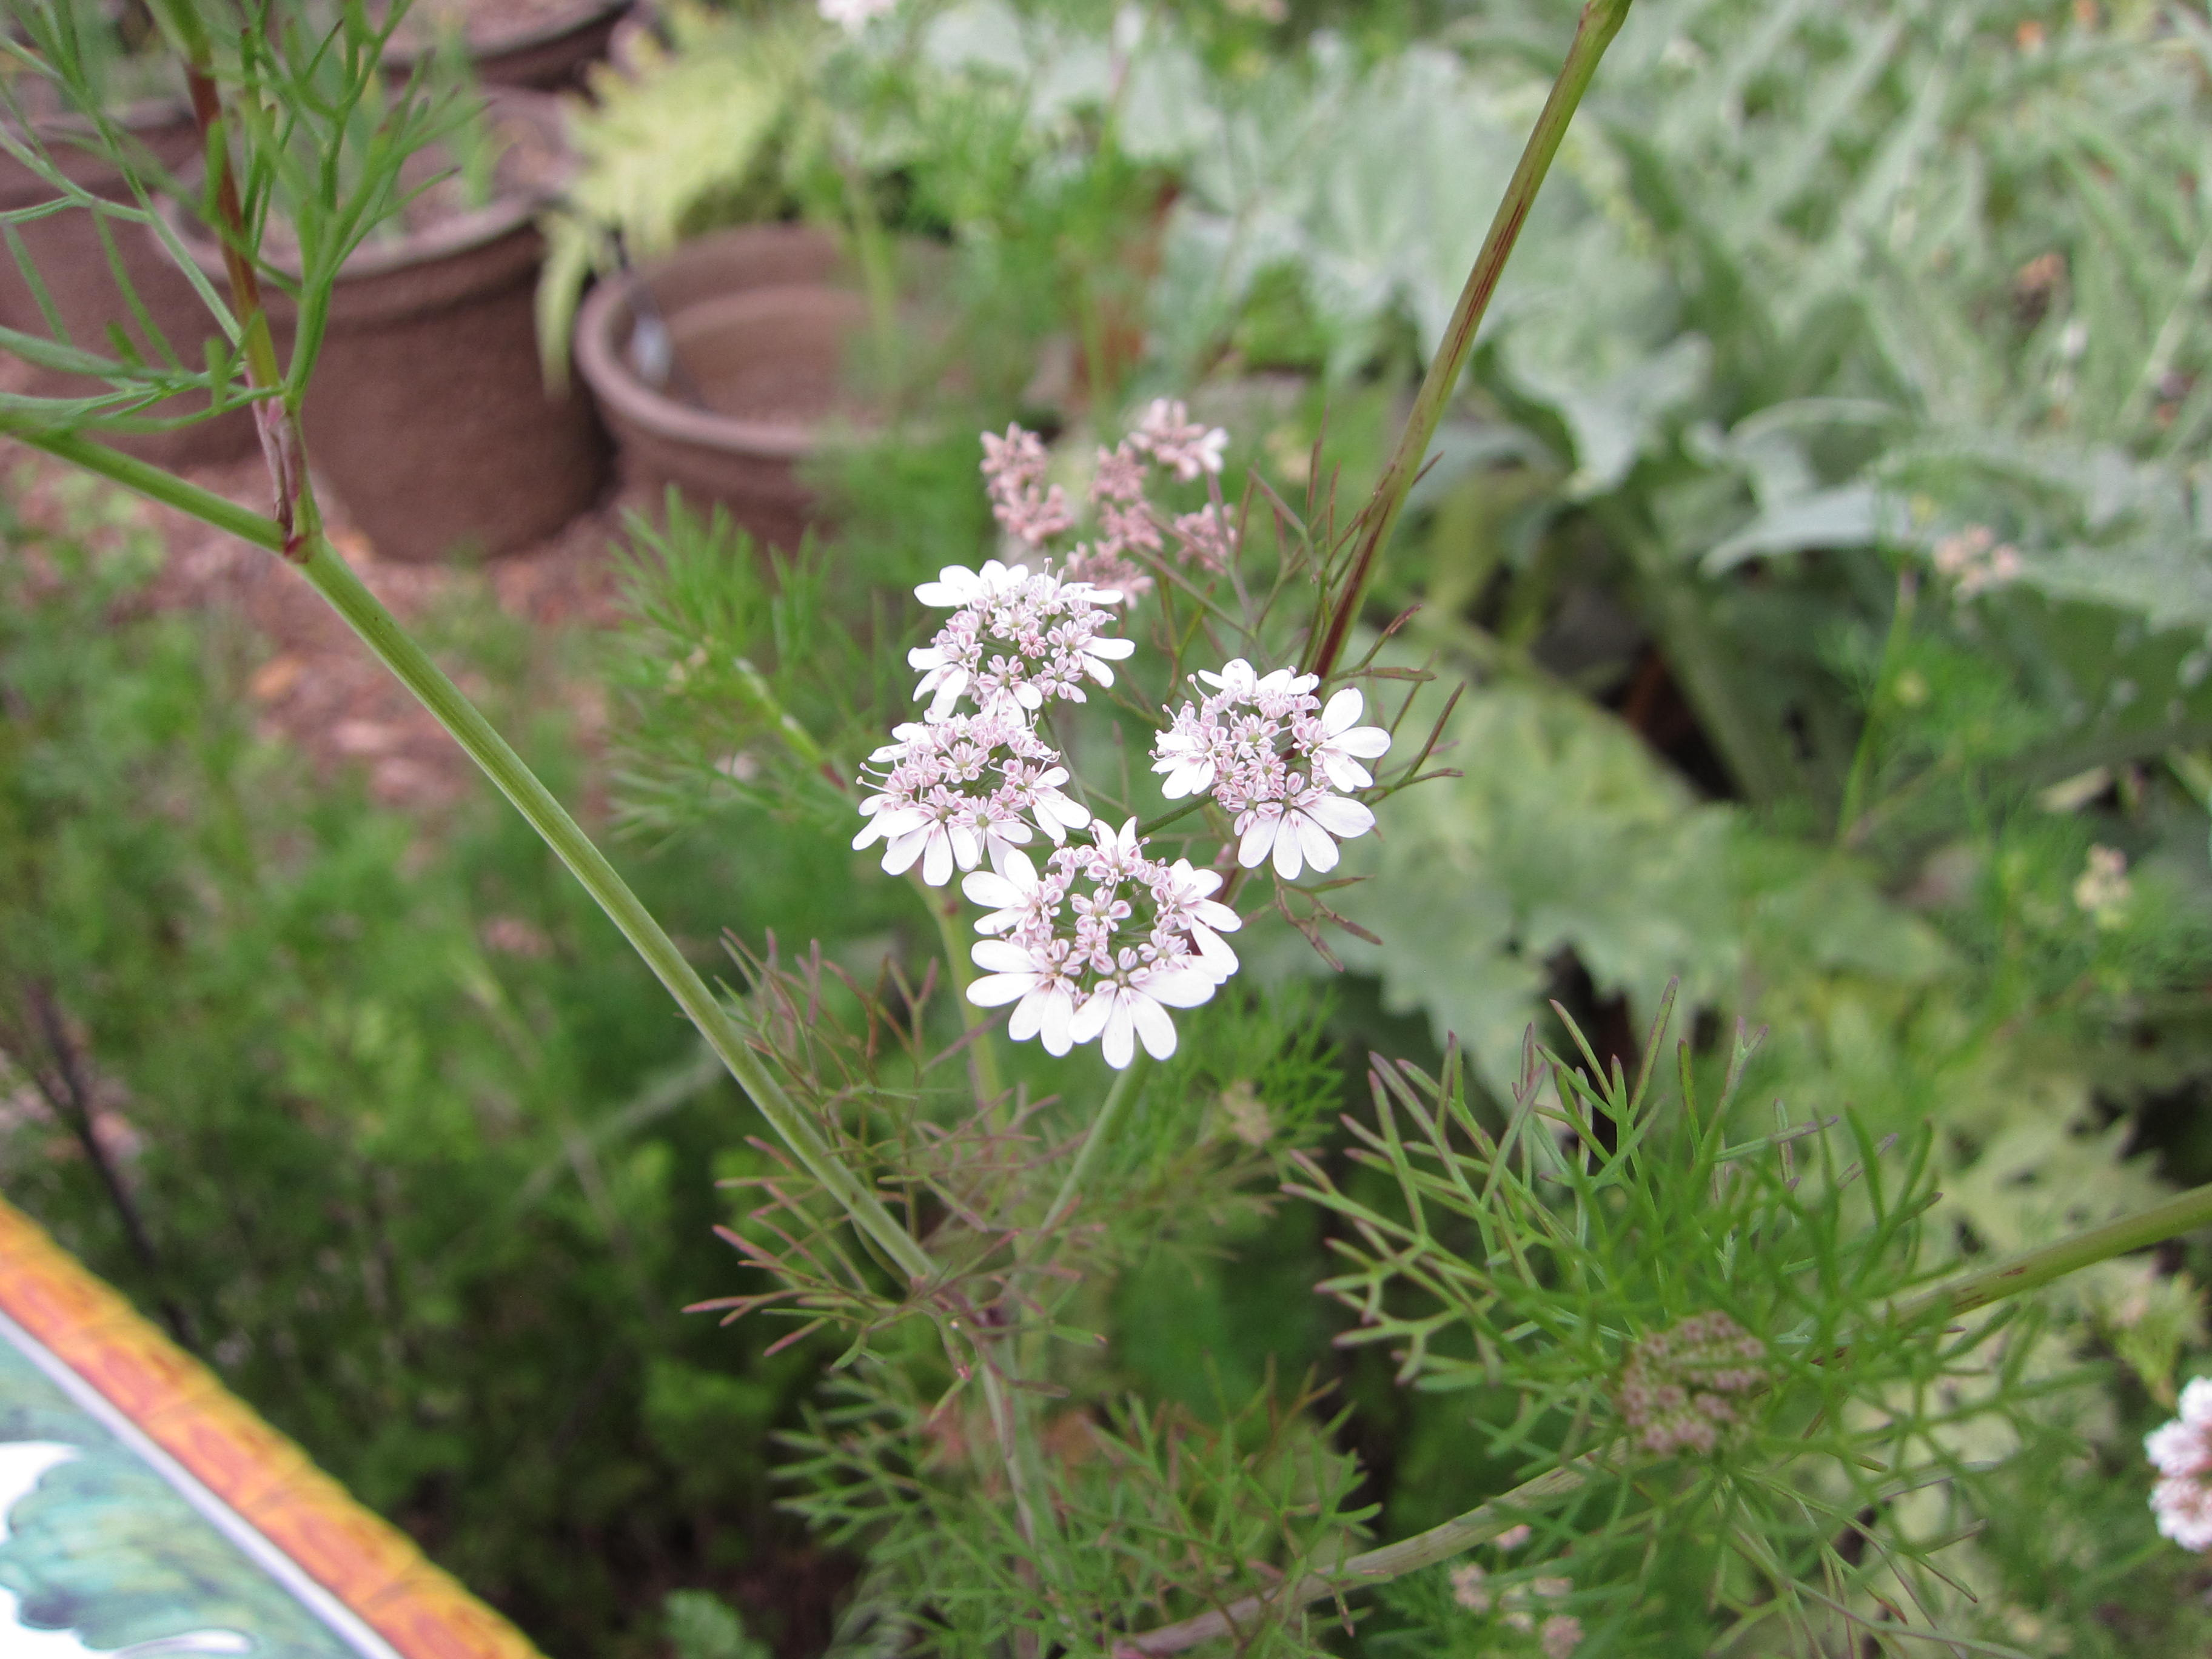 Let cilantro go to seed. It benefits bees., parasitic wasps and other beneficial insects. We'll let this re-seed itself and hopefully have cilantro again soon.